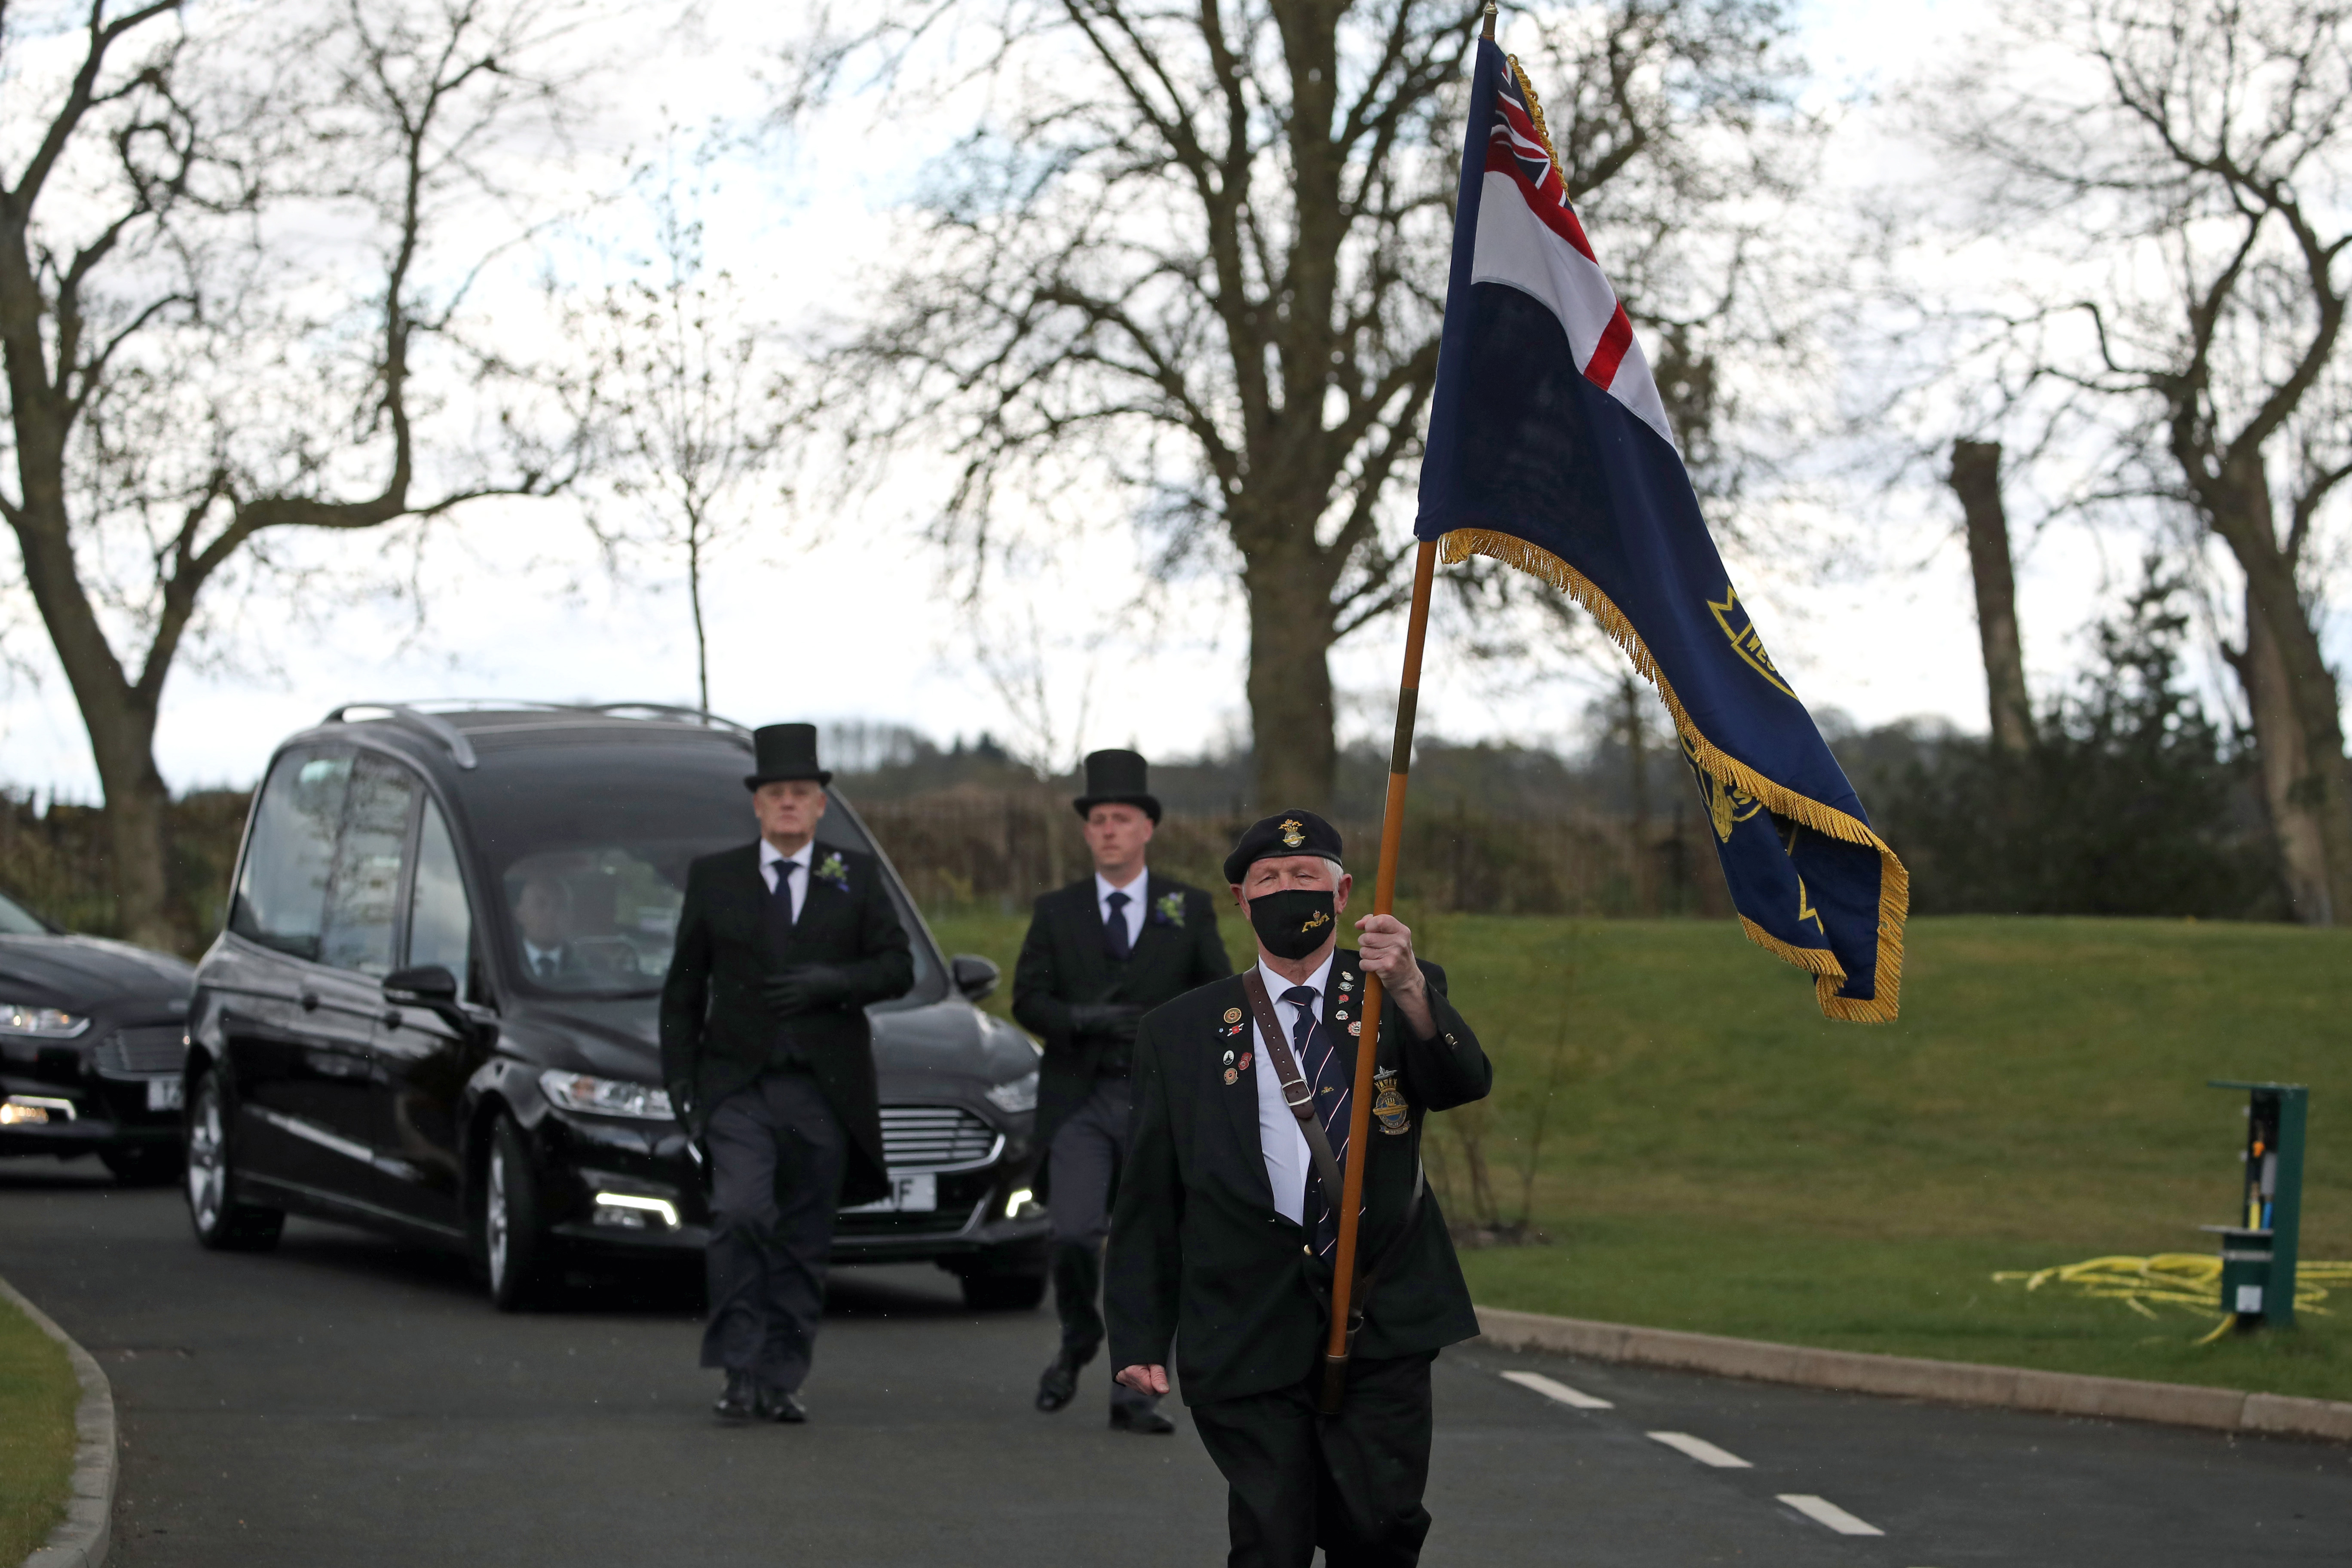 <p>A retired submariner walks in front of the cortege as it arrives at Stirling Crematorium, during the funeral of cyclist Anthony Parsons, whose body was found three years after he vanished. The former Navy petty officer, also known as Tony, went missing aged 63 in 2017 while on a long charity cycle from his home in Tillicoultry, Clackmannanshire, to Fort William. Picture date: Thursday April 29, 2021.</p>